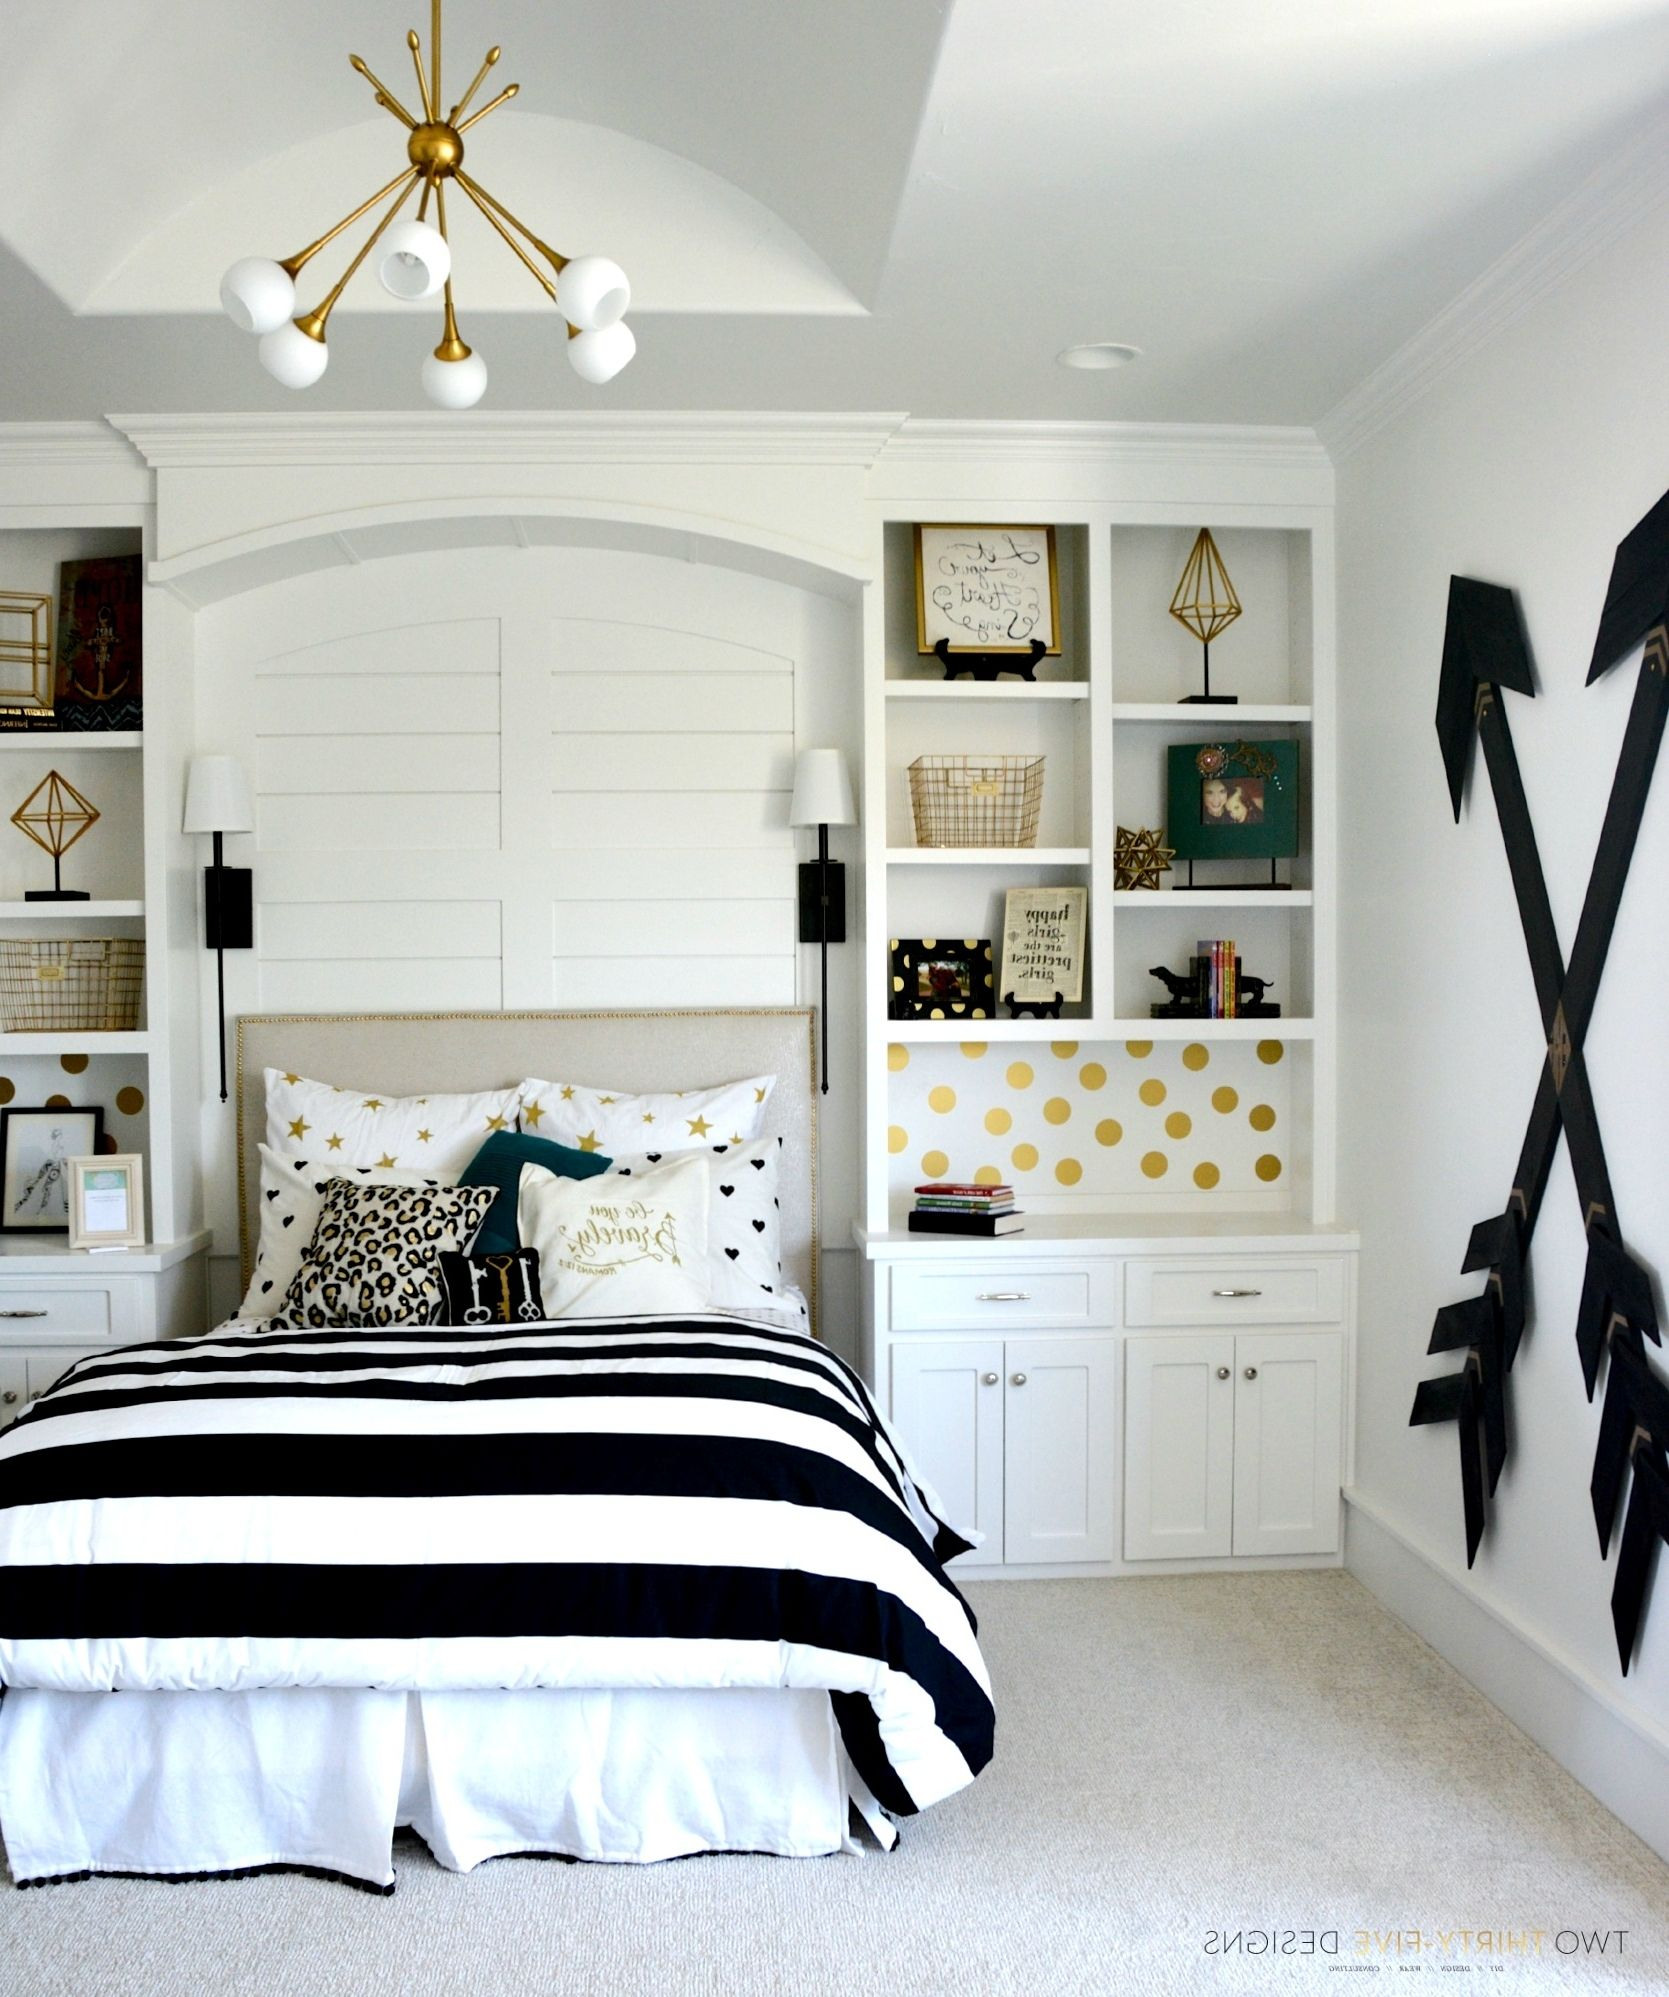 Room Decor Bedroom Decor Und: Black And Gold Teen Bedroom Ideas Galleryhip The Hippest